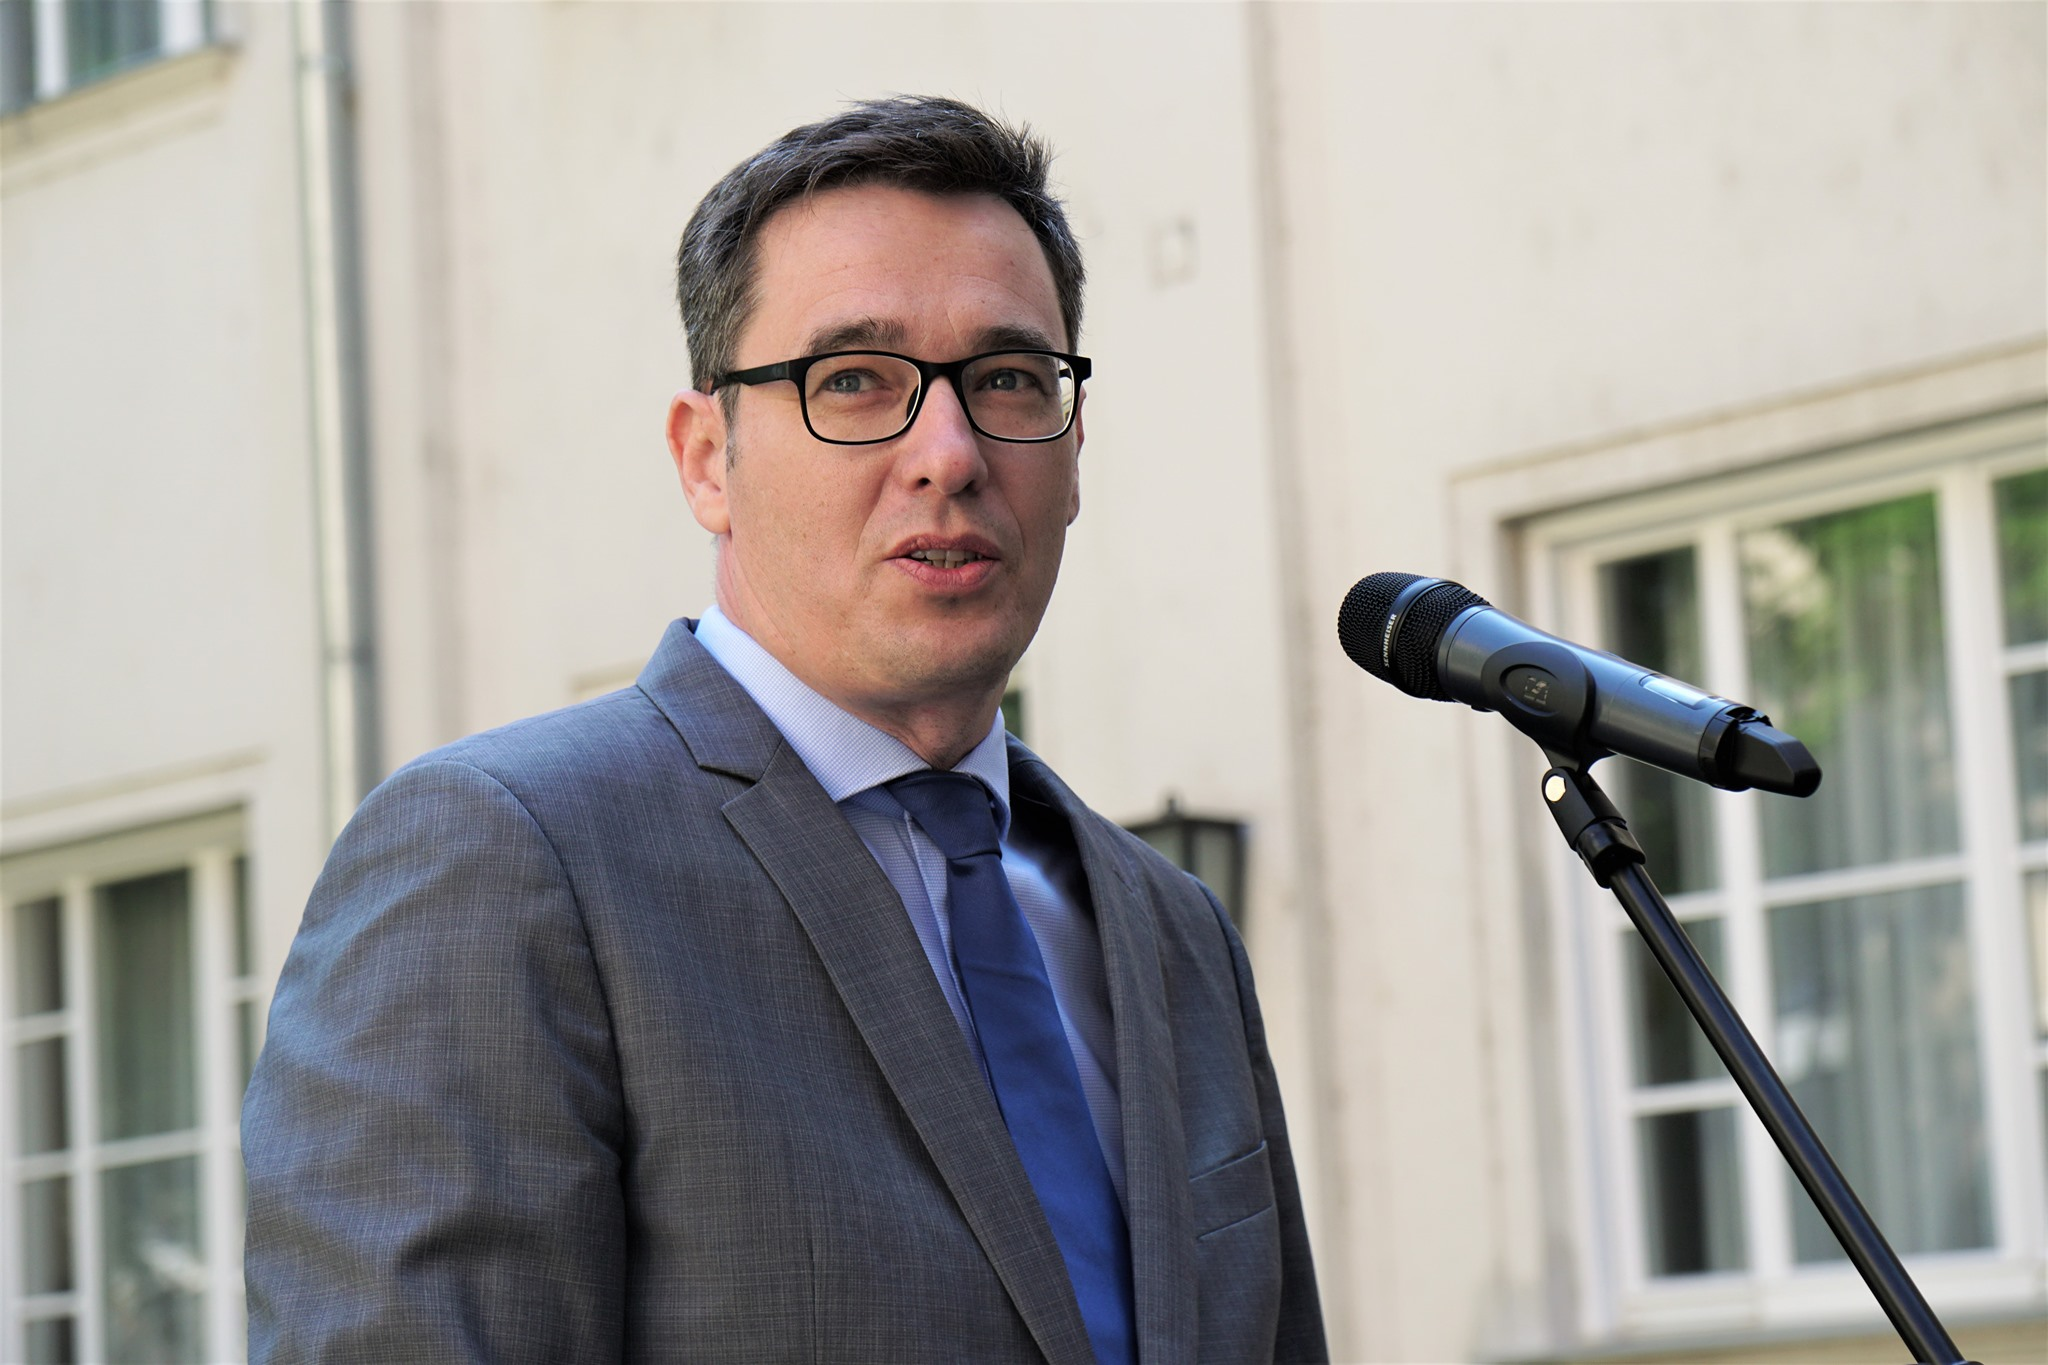 PM Candidate Karácsony Presents First Part of 99 Movement Program